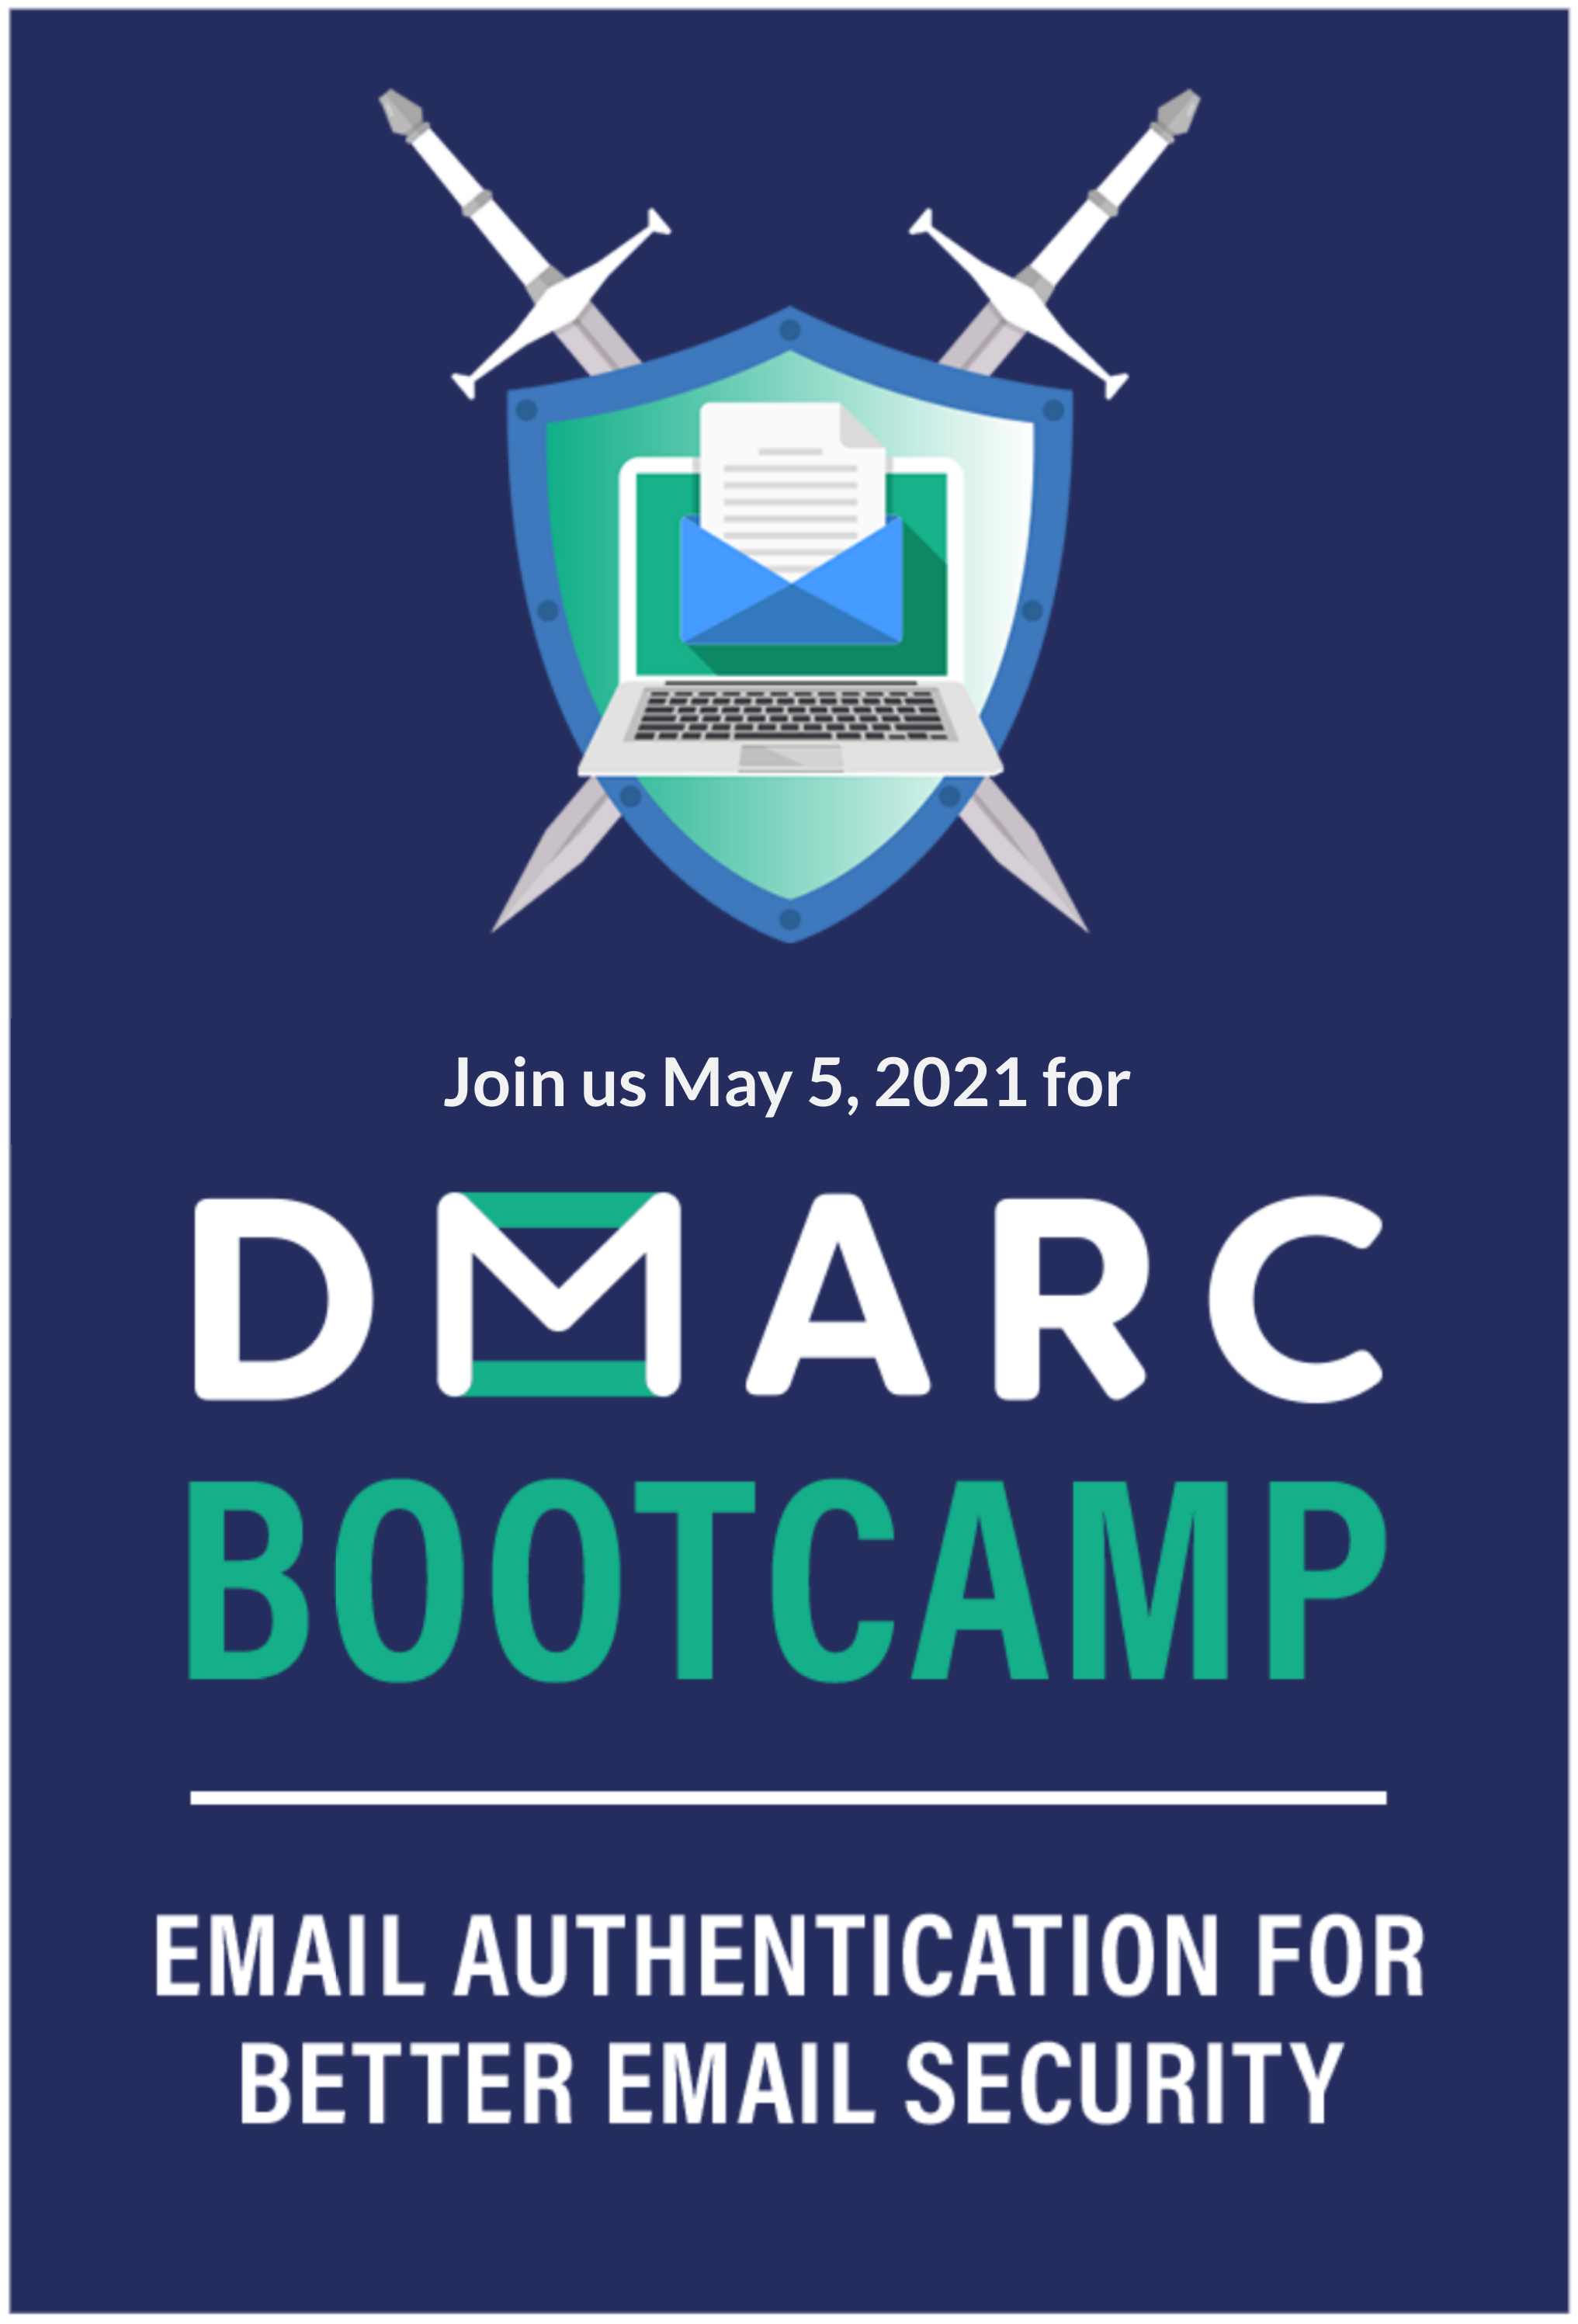 DMARC-Bootcamp-May-2021 (2)